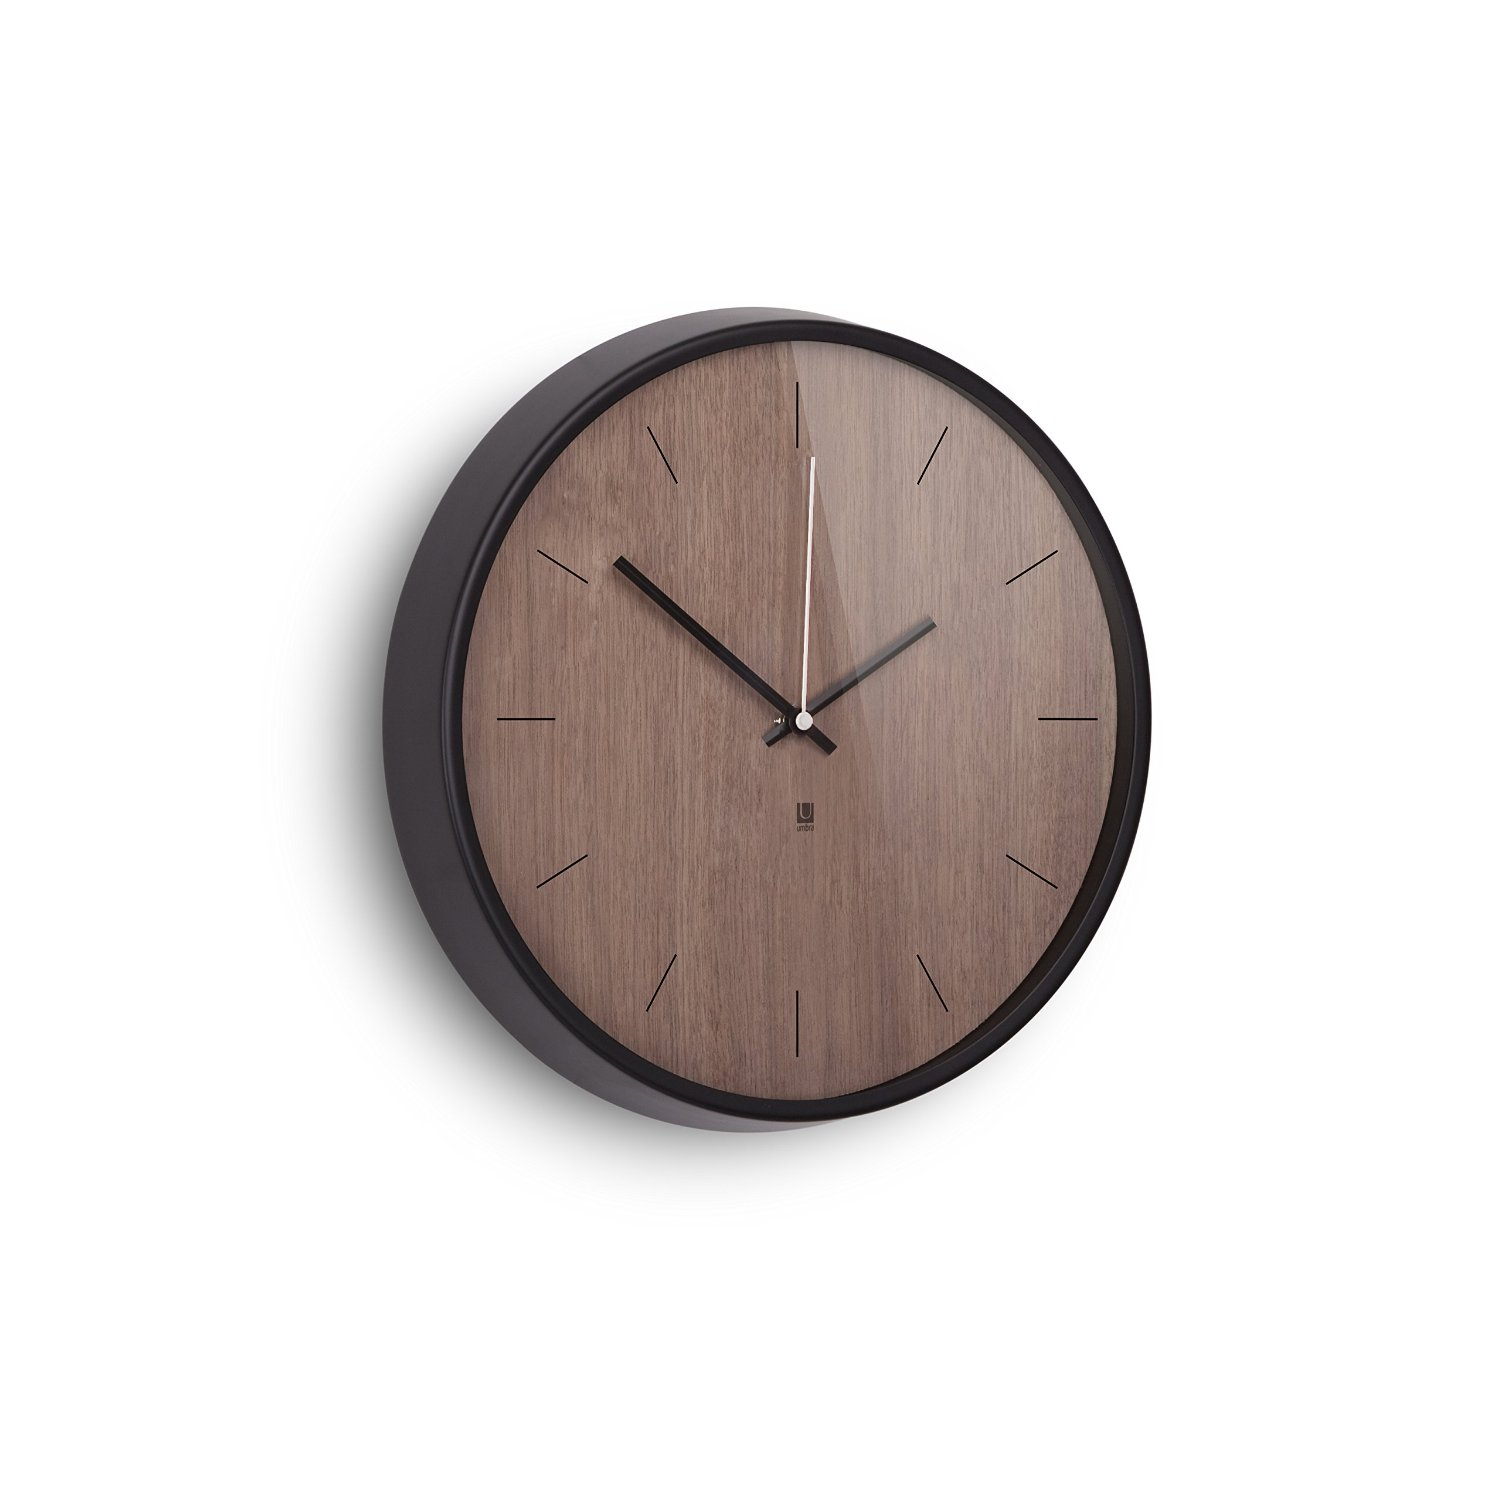 Umbra Madera Wall Clock, Walnut/Black